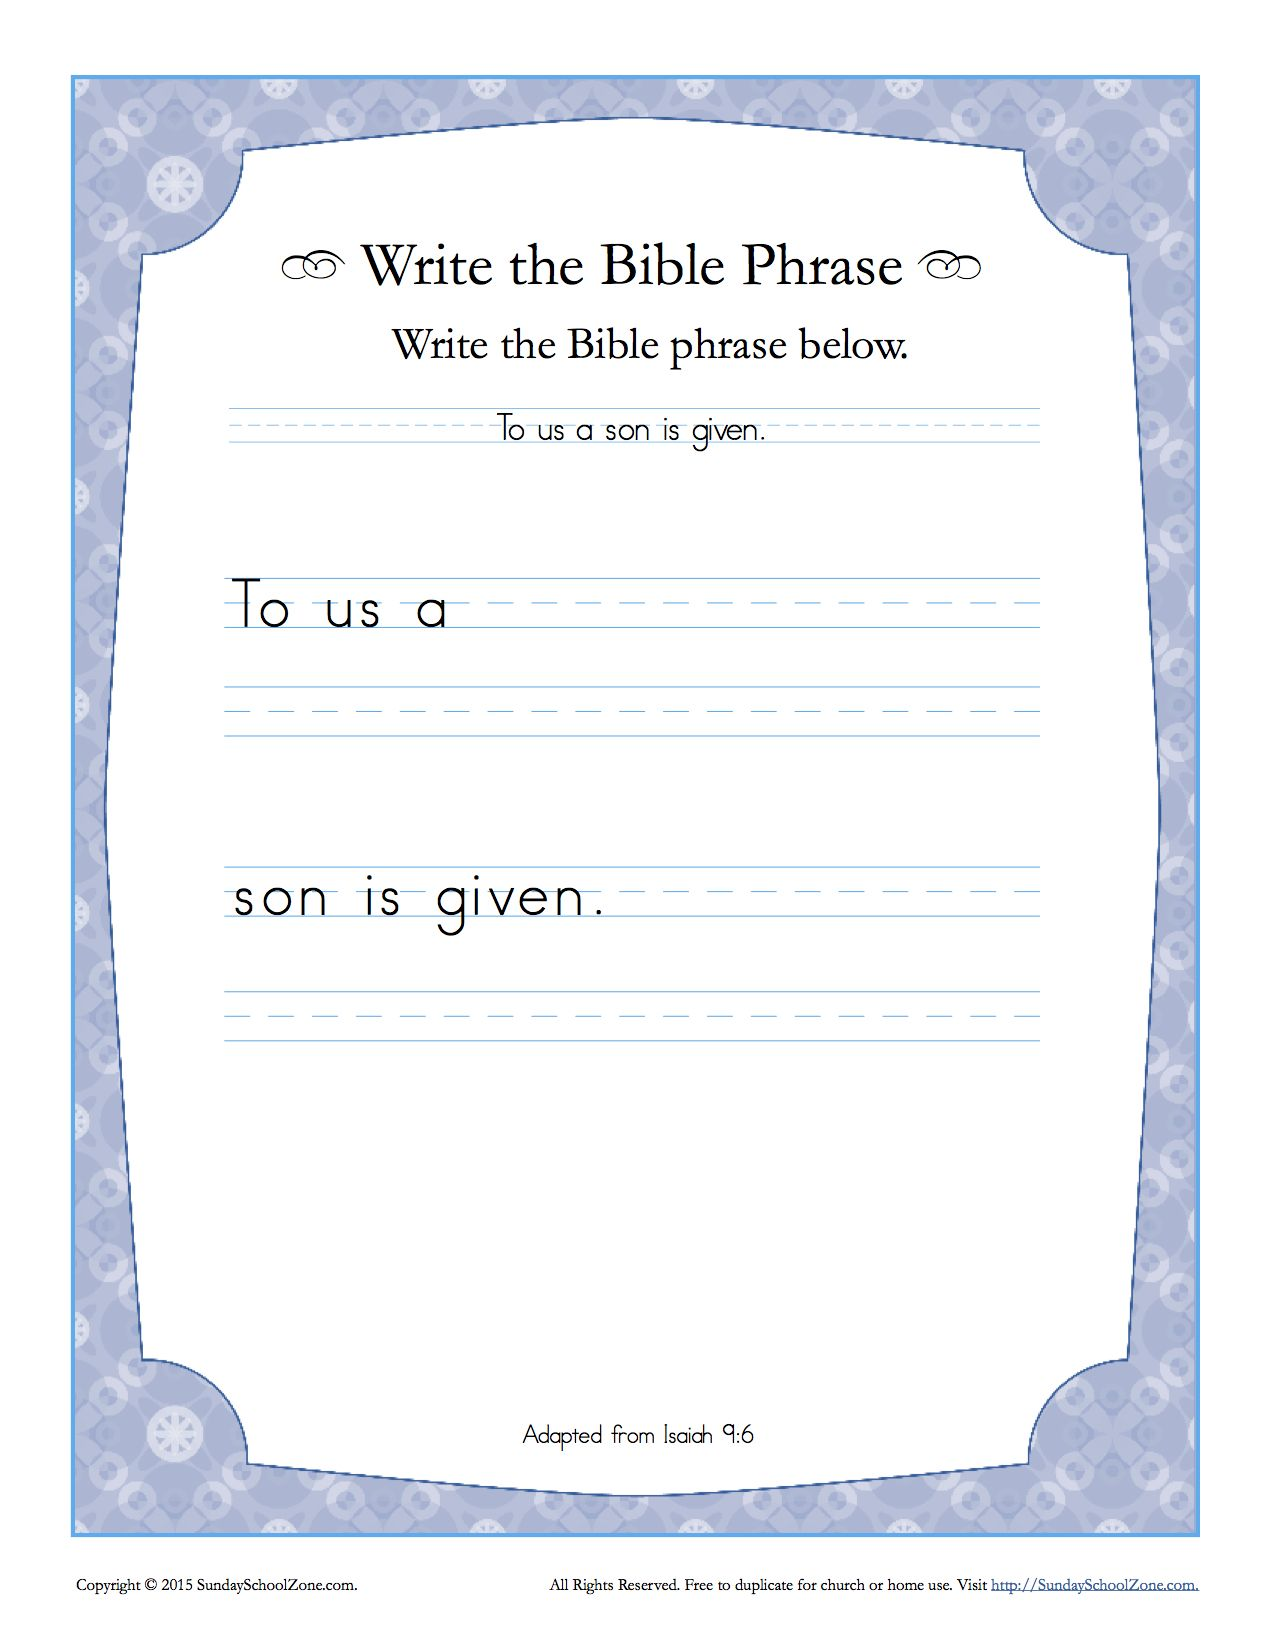 Isaiah 9 6 Write The Bible Phrase Worksheet